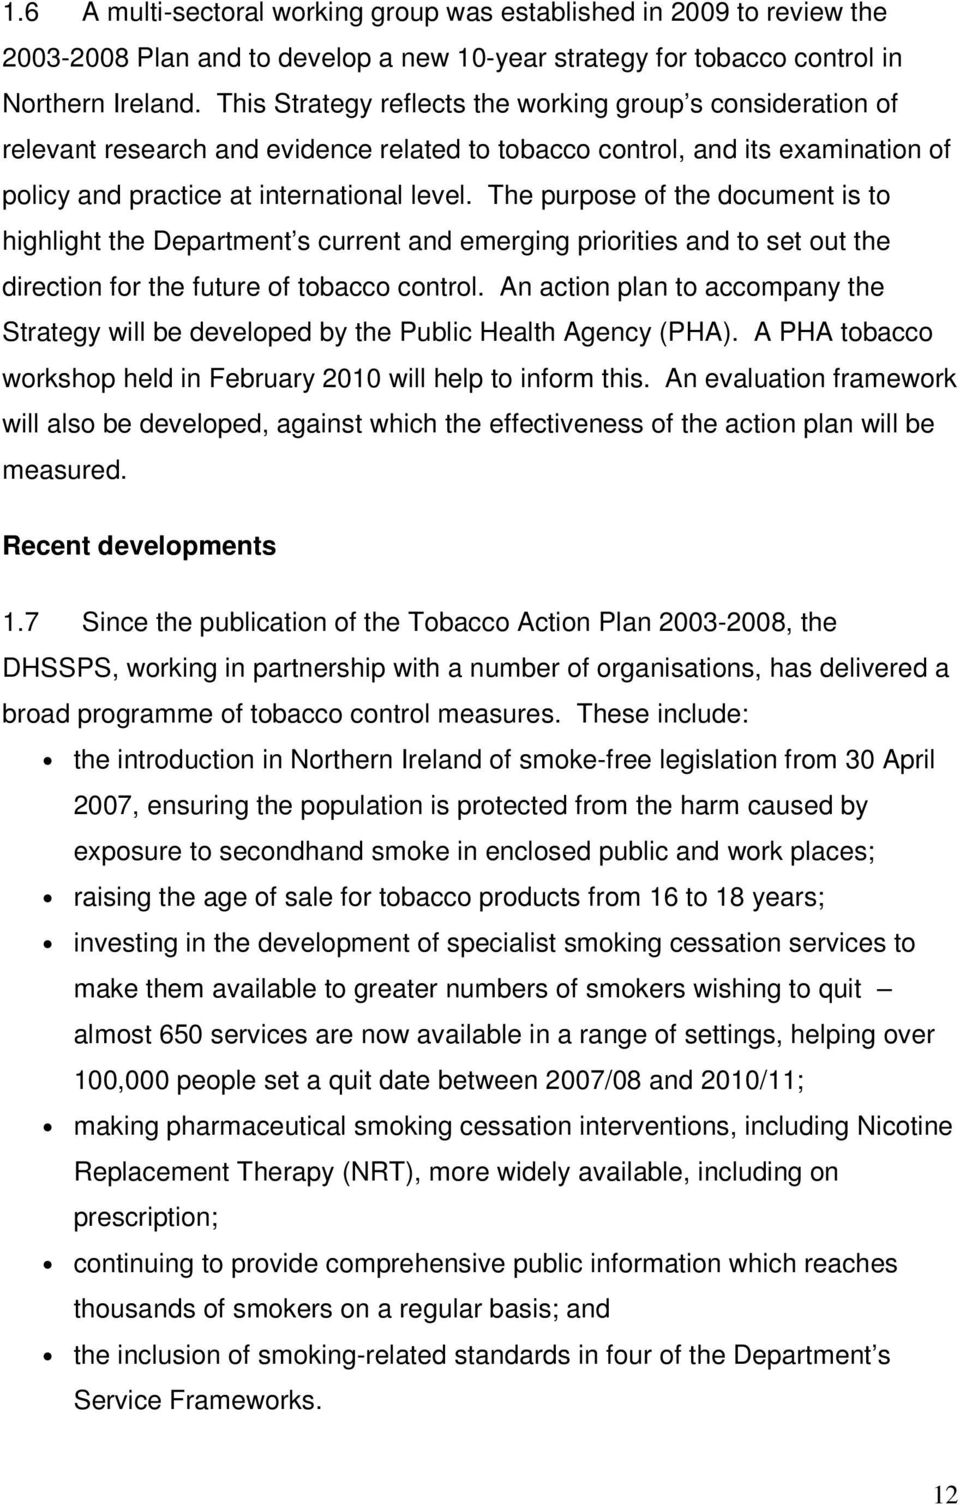 The purpose of the document is to highlight the Department s current and emerging priorities and to set out the direction for the future of tobacco control.